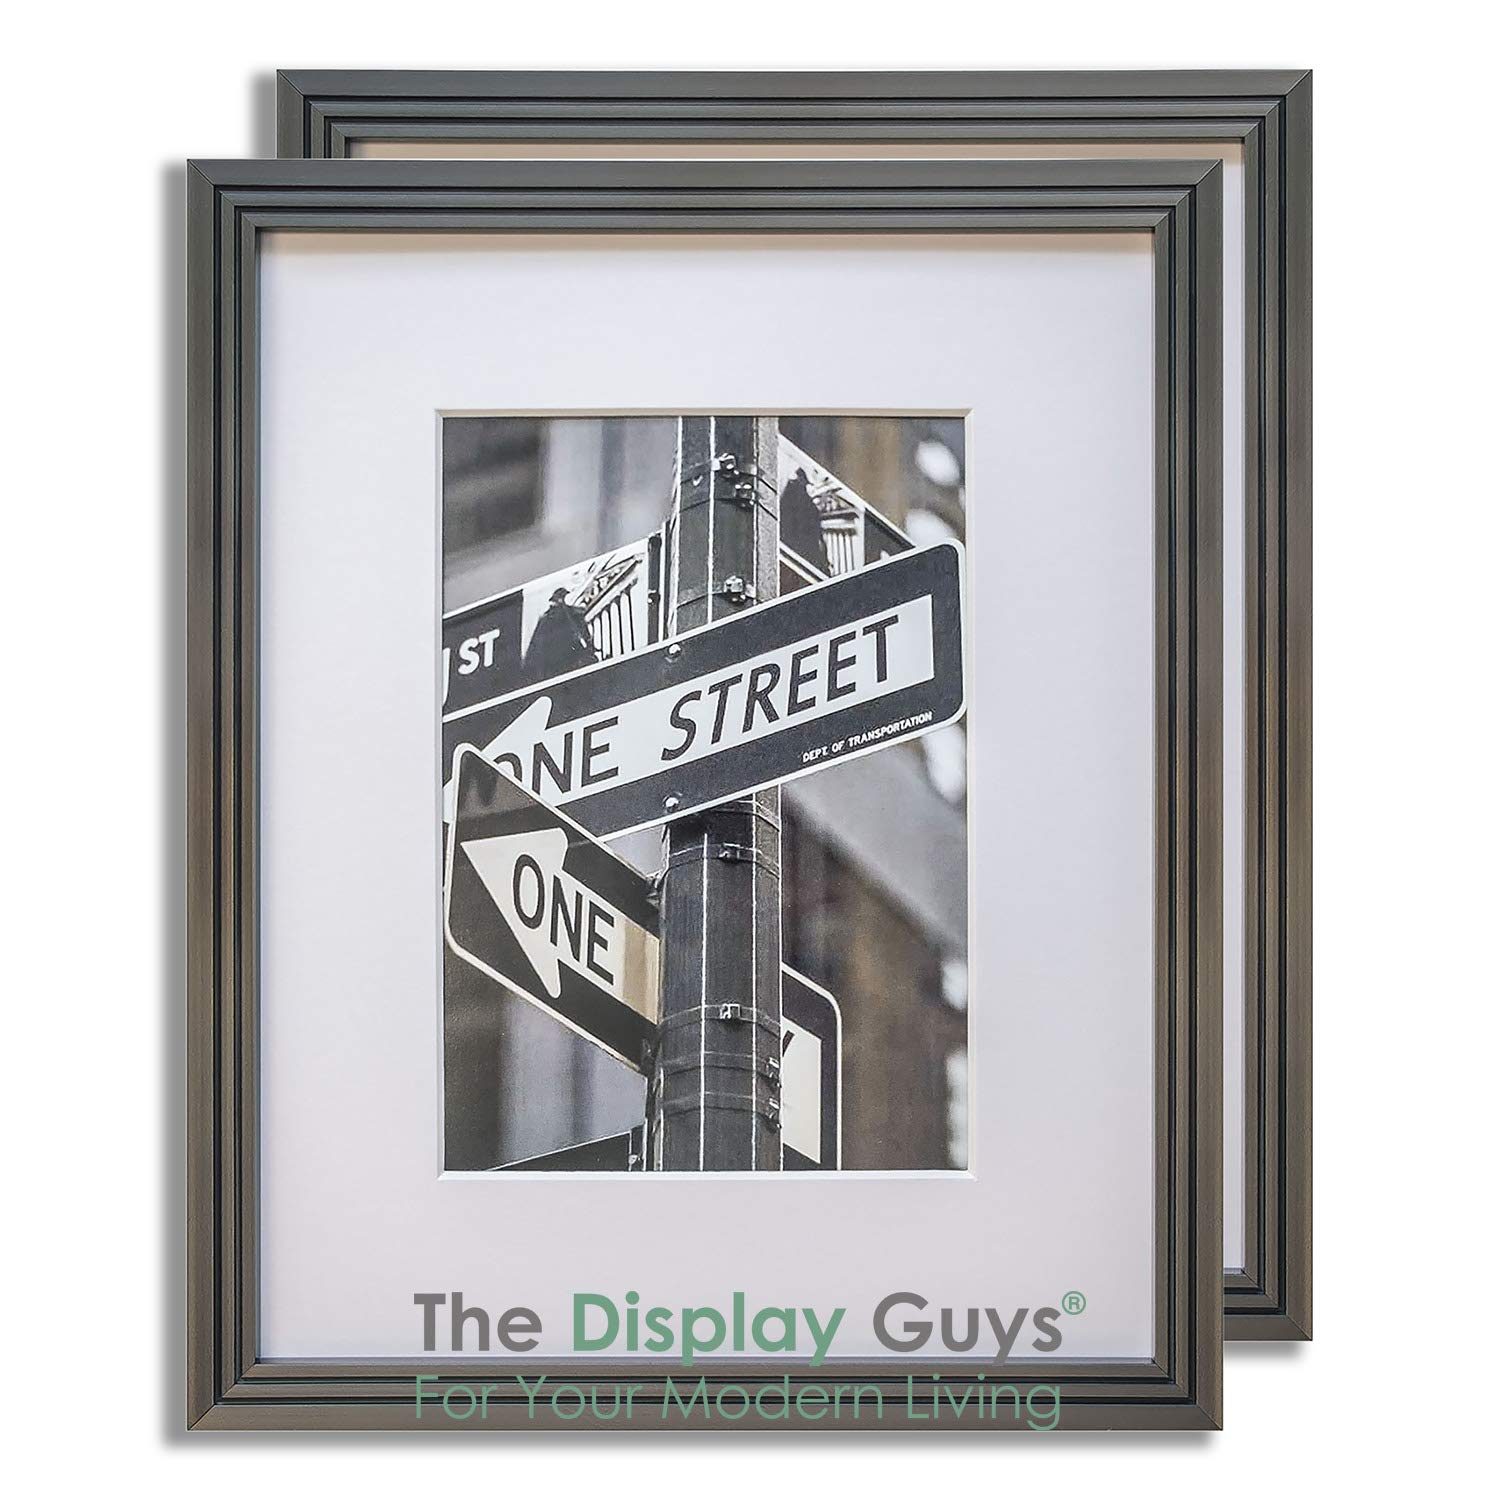 The Display Guys 2-Pack Steel Grey (Gunmetal) 16x20 Picture Frames w. Mat for 11x14 + Bonus 4x6 Collage Mat (Art Deco Series), Real Glass 5/8'' Thin Border by Generic